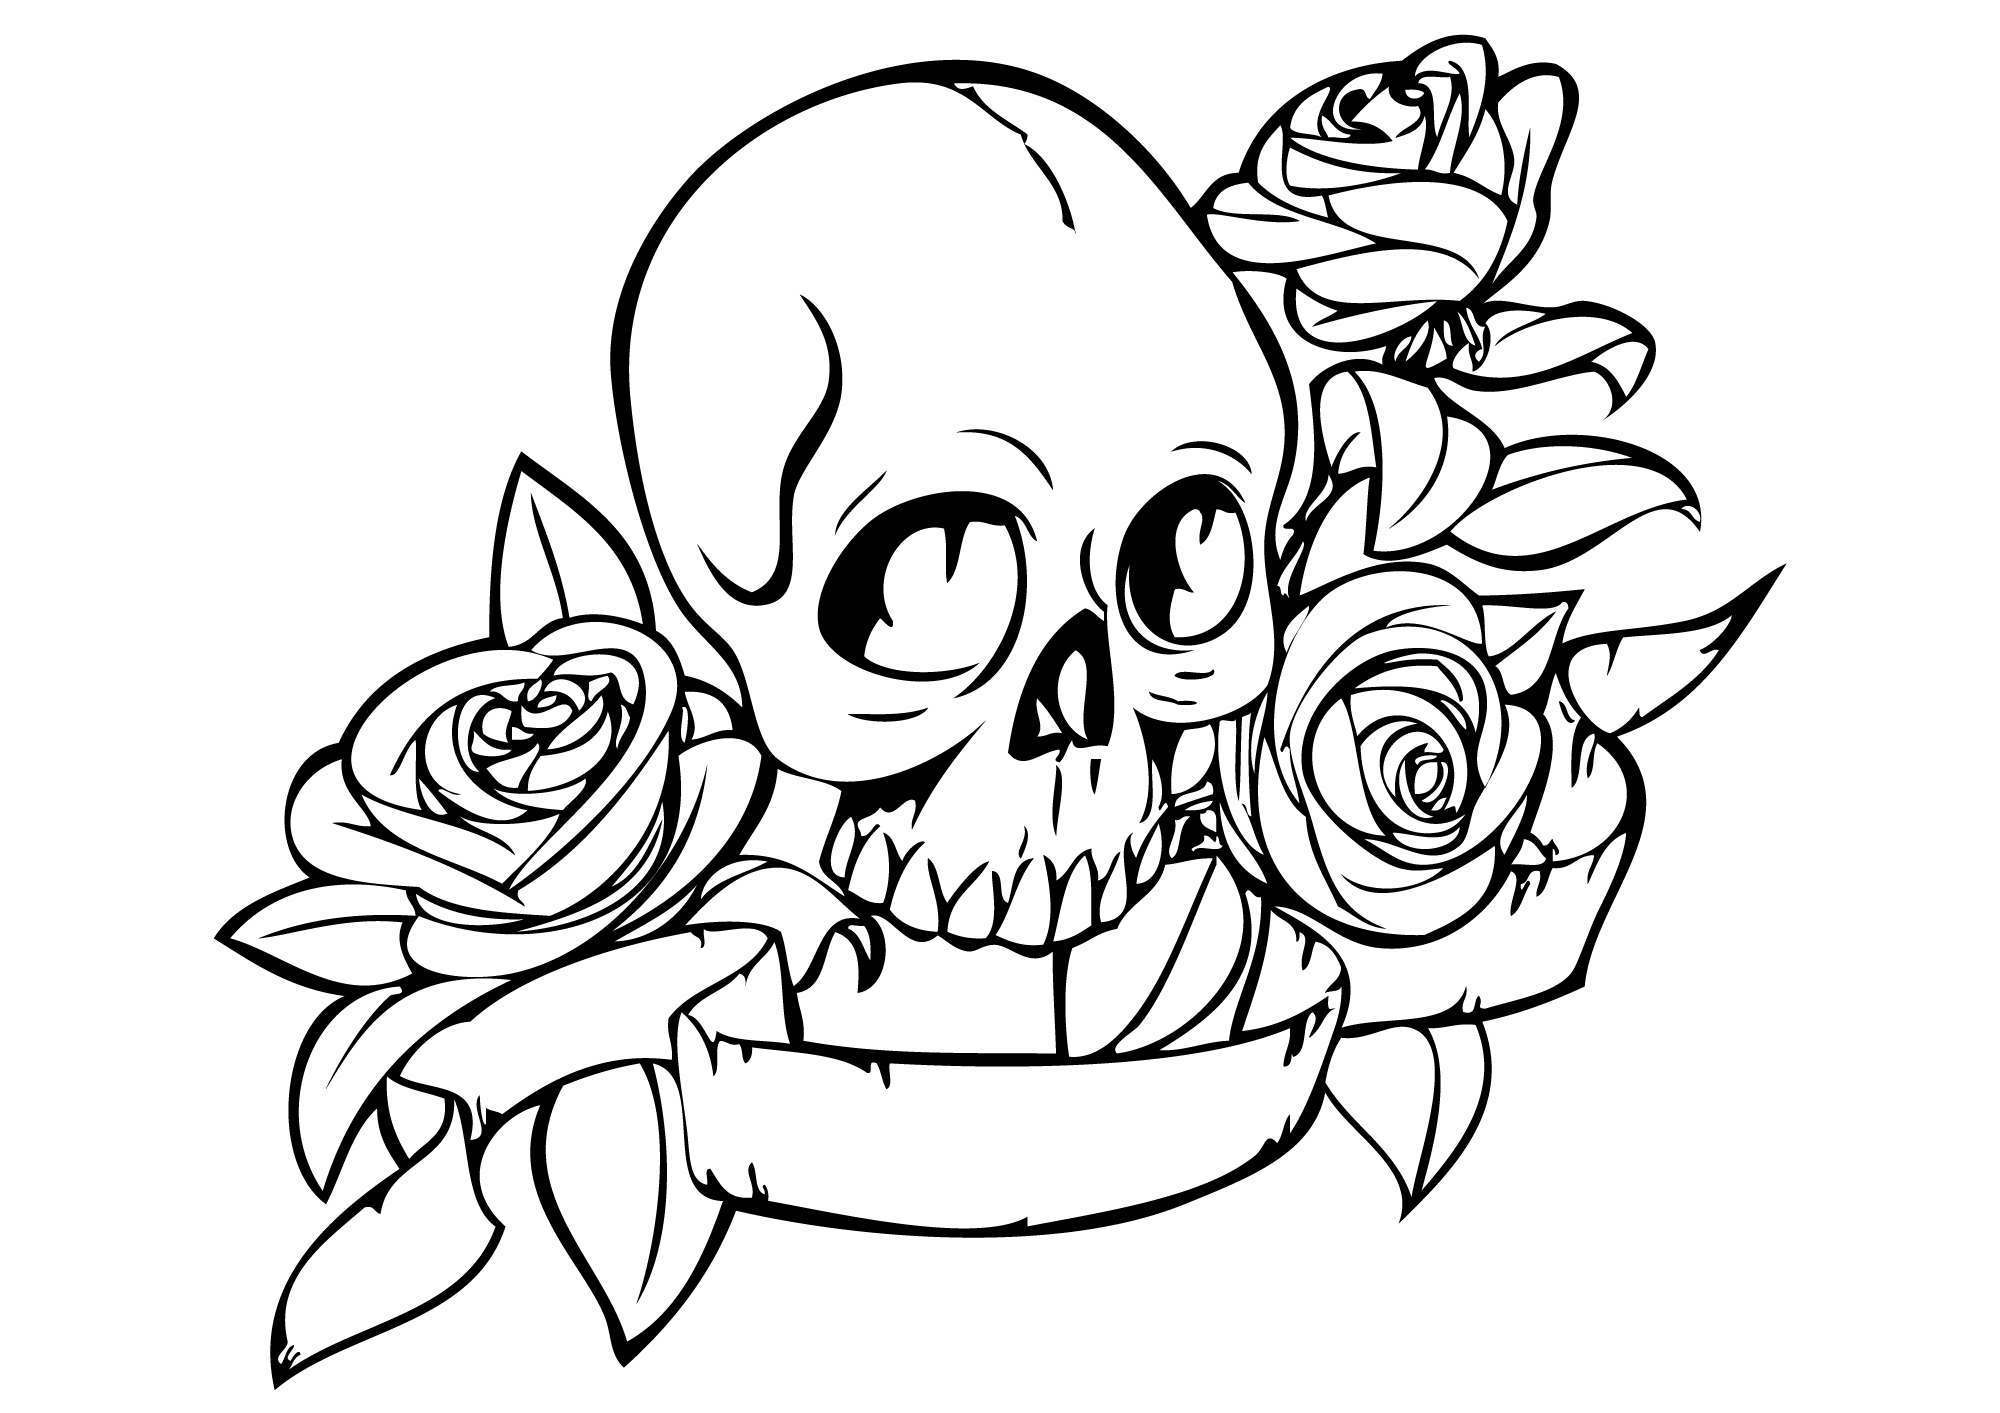 2000x1413 Skull Coloring Pages With Sugar Skull Drawings With Roses Tumbl